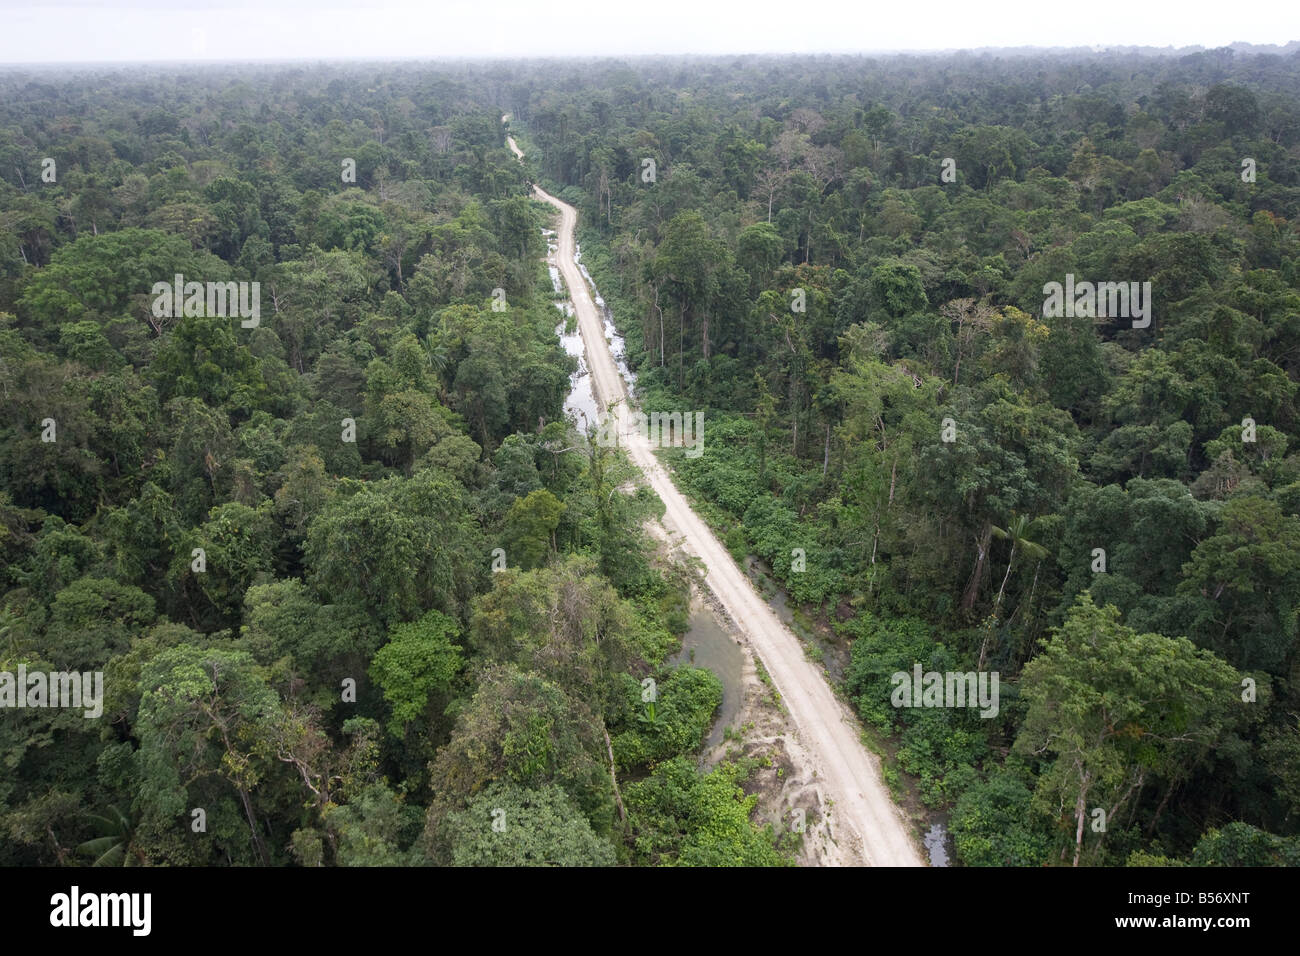 The rainforests of the Turama extension logging concession, near Paia, Gulf Province, Papua New Guinea - Stock Image